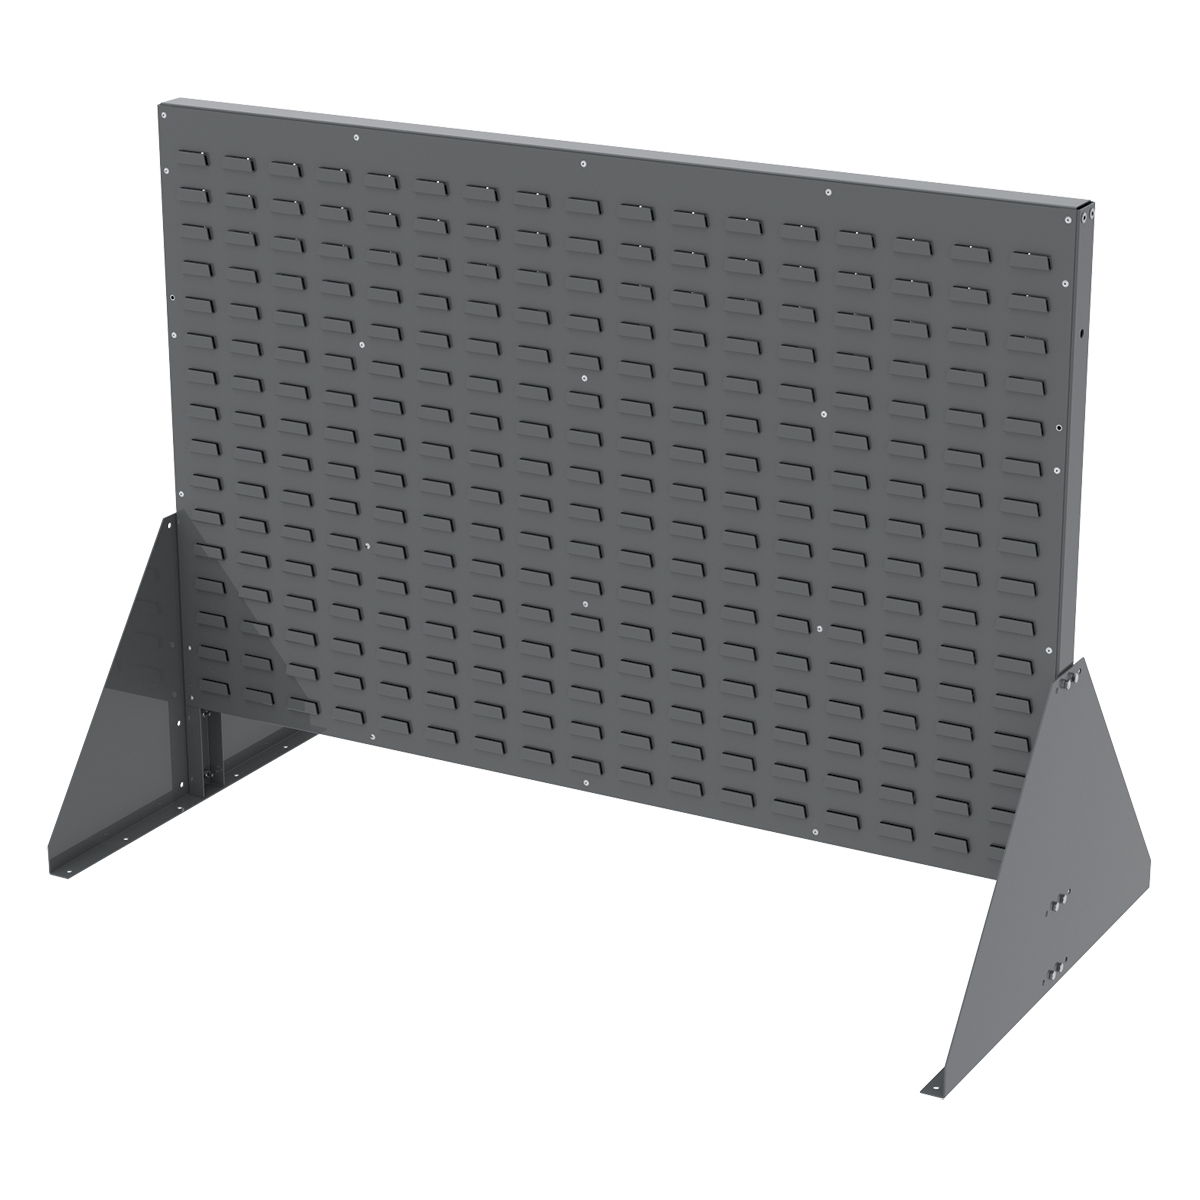 Item DISCONTINUED by Manufacturer.  Low Profile Floor Rack, 2-Sided, No Top Shelf, Gray (30607GY).  This item sold in carton quantities of 1.